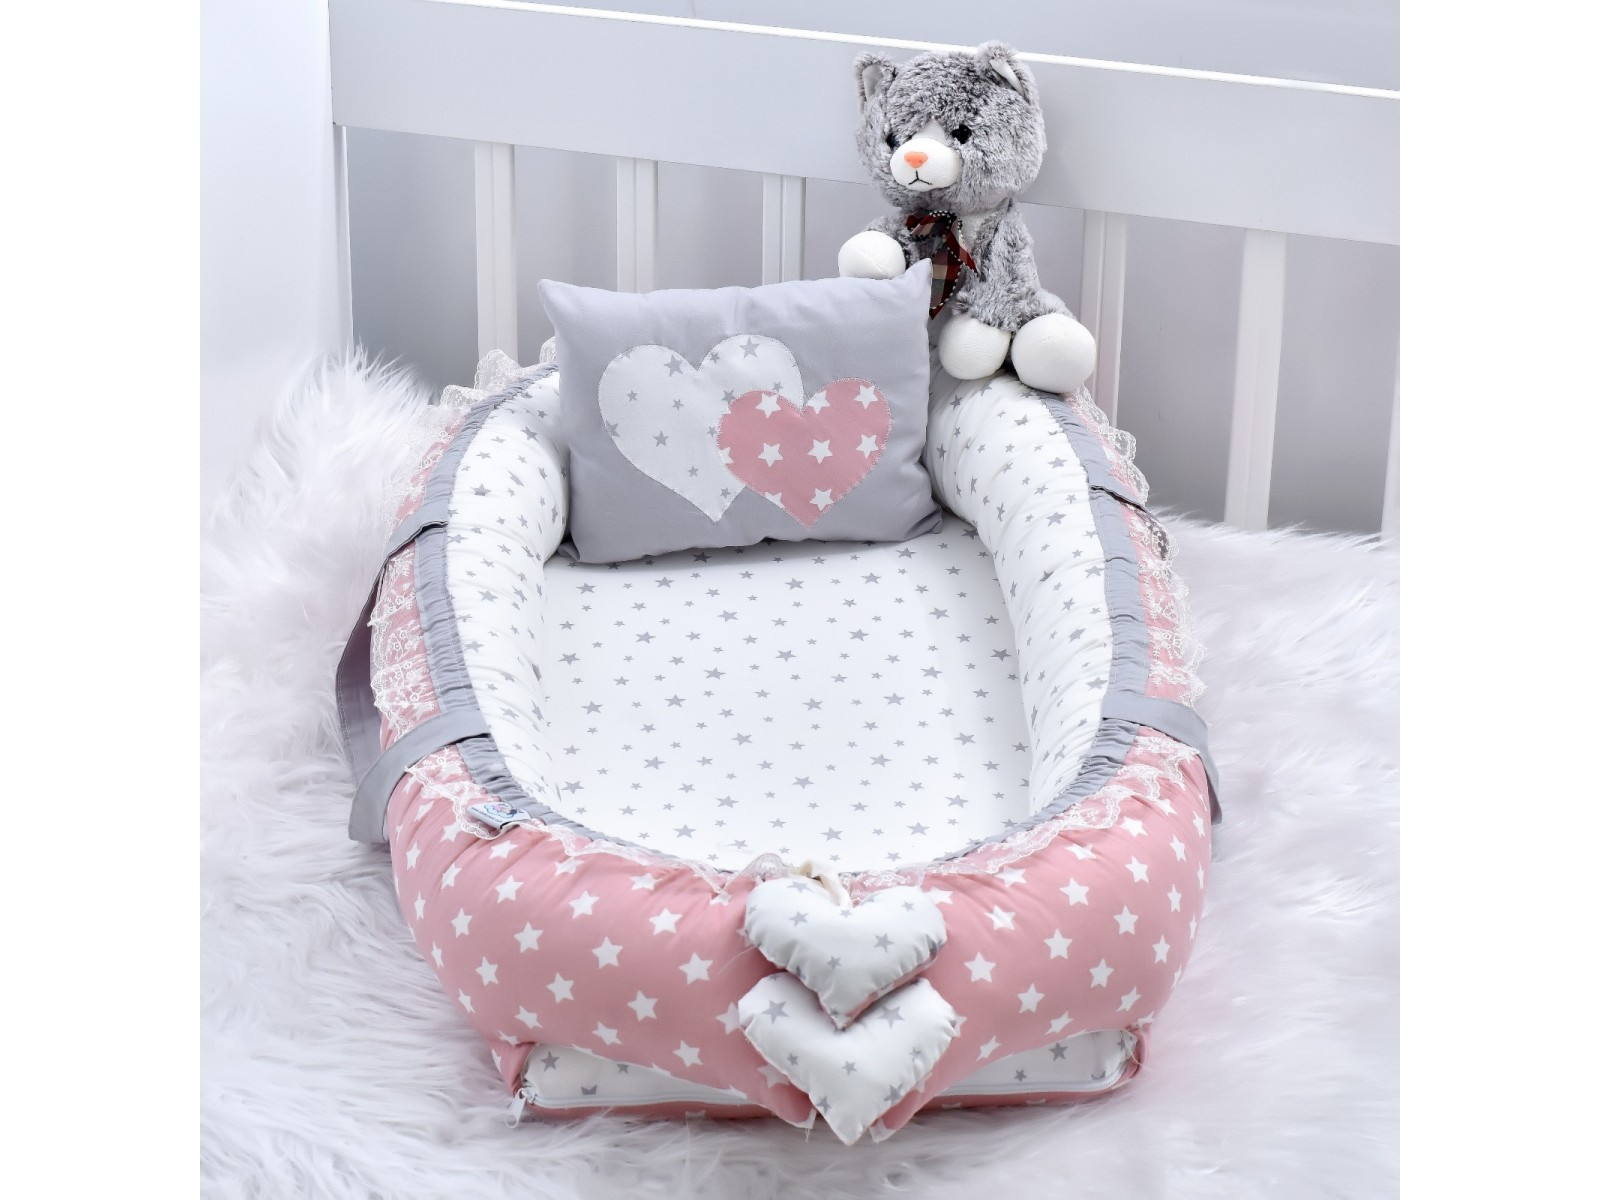 Babynest Powder Star Grey Combine Heart Design